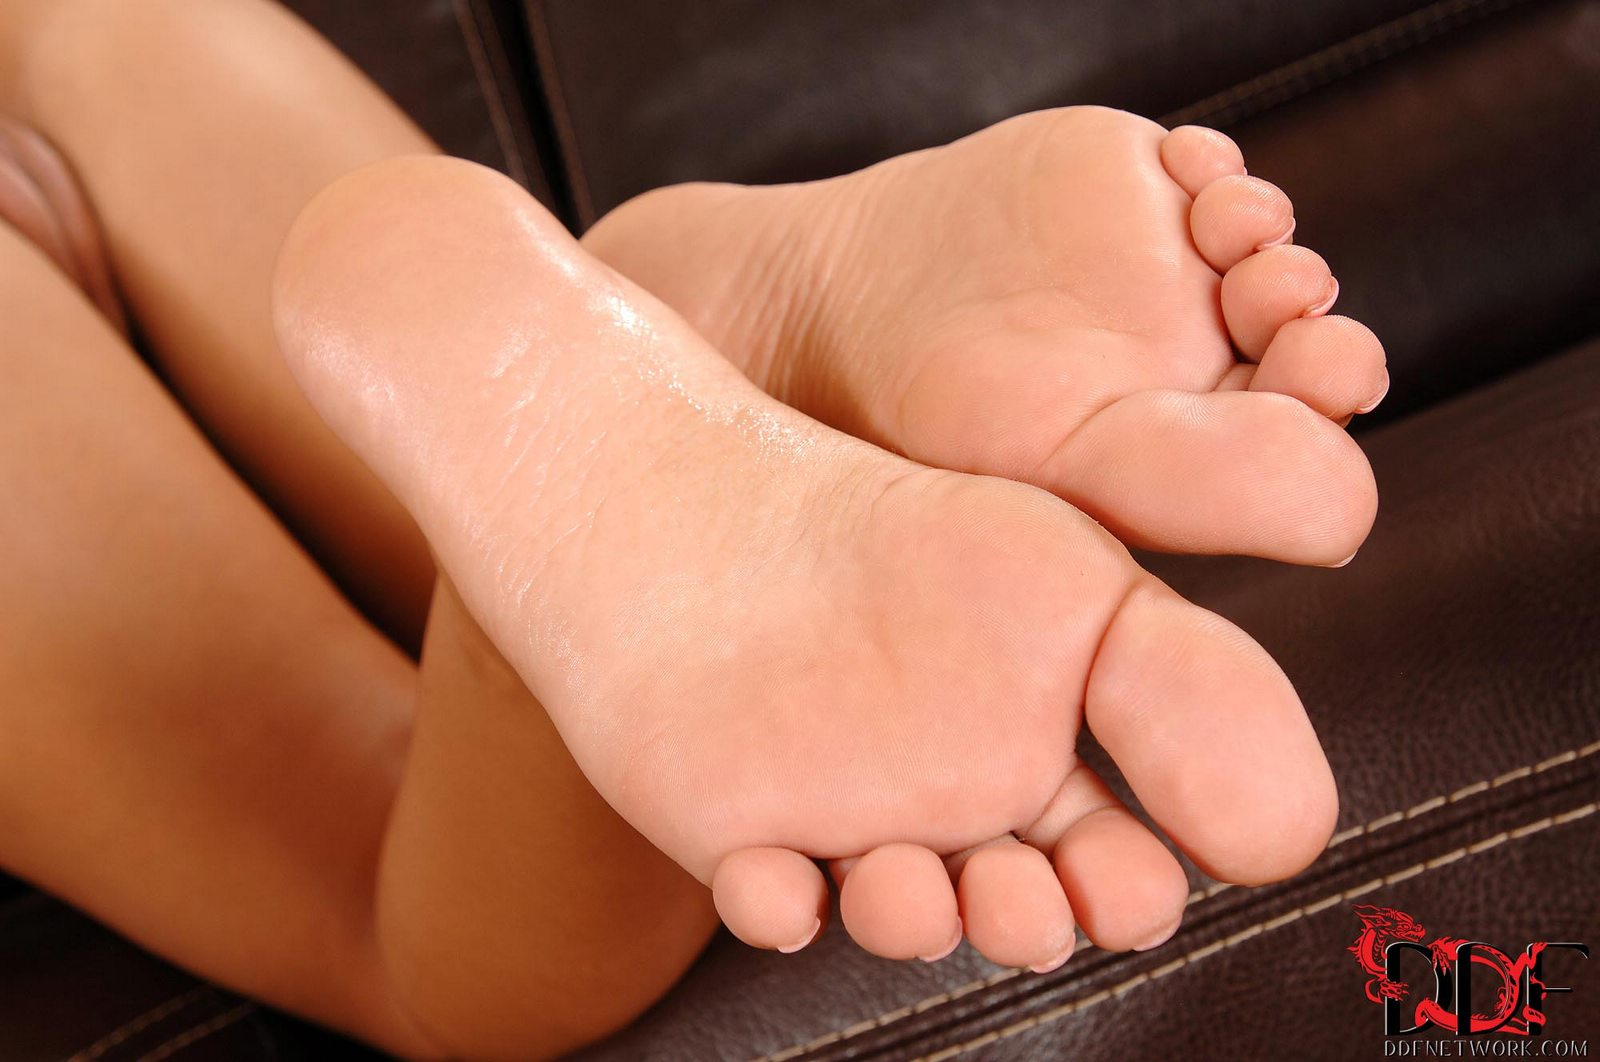 Angelica heart feet